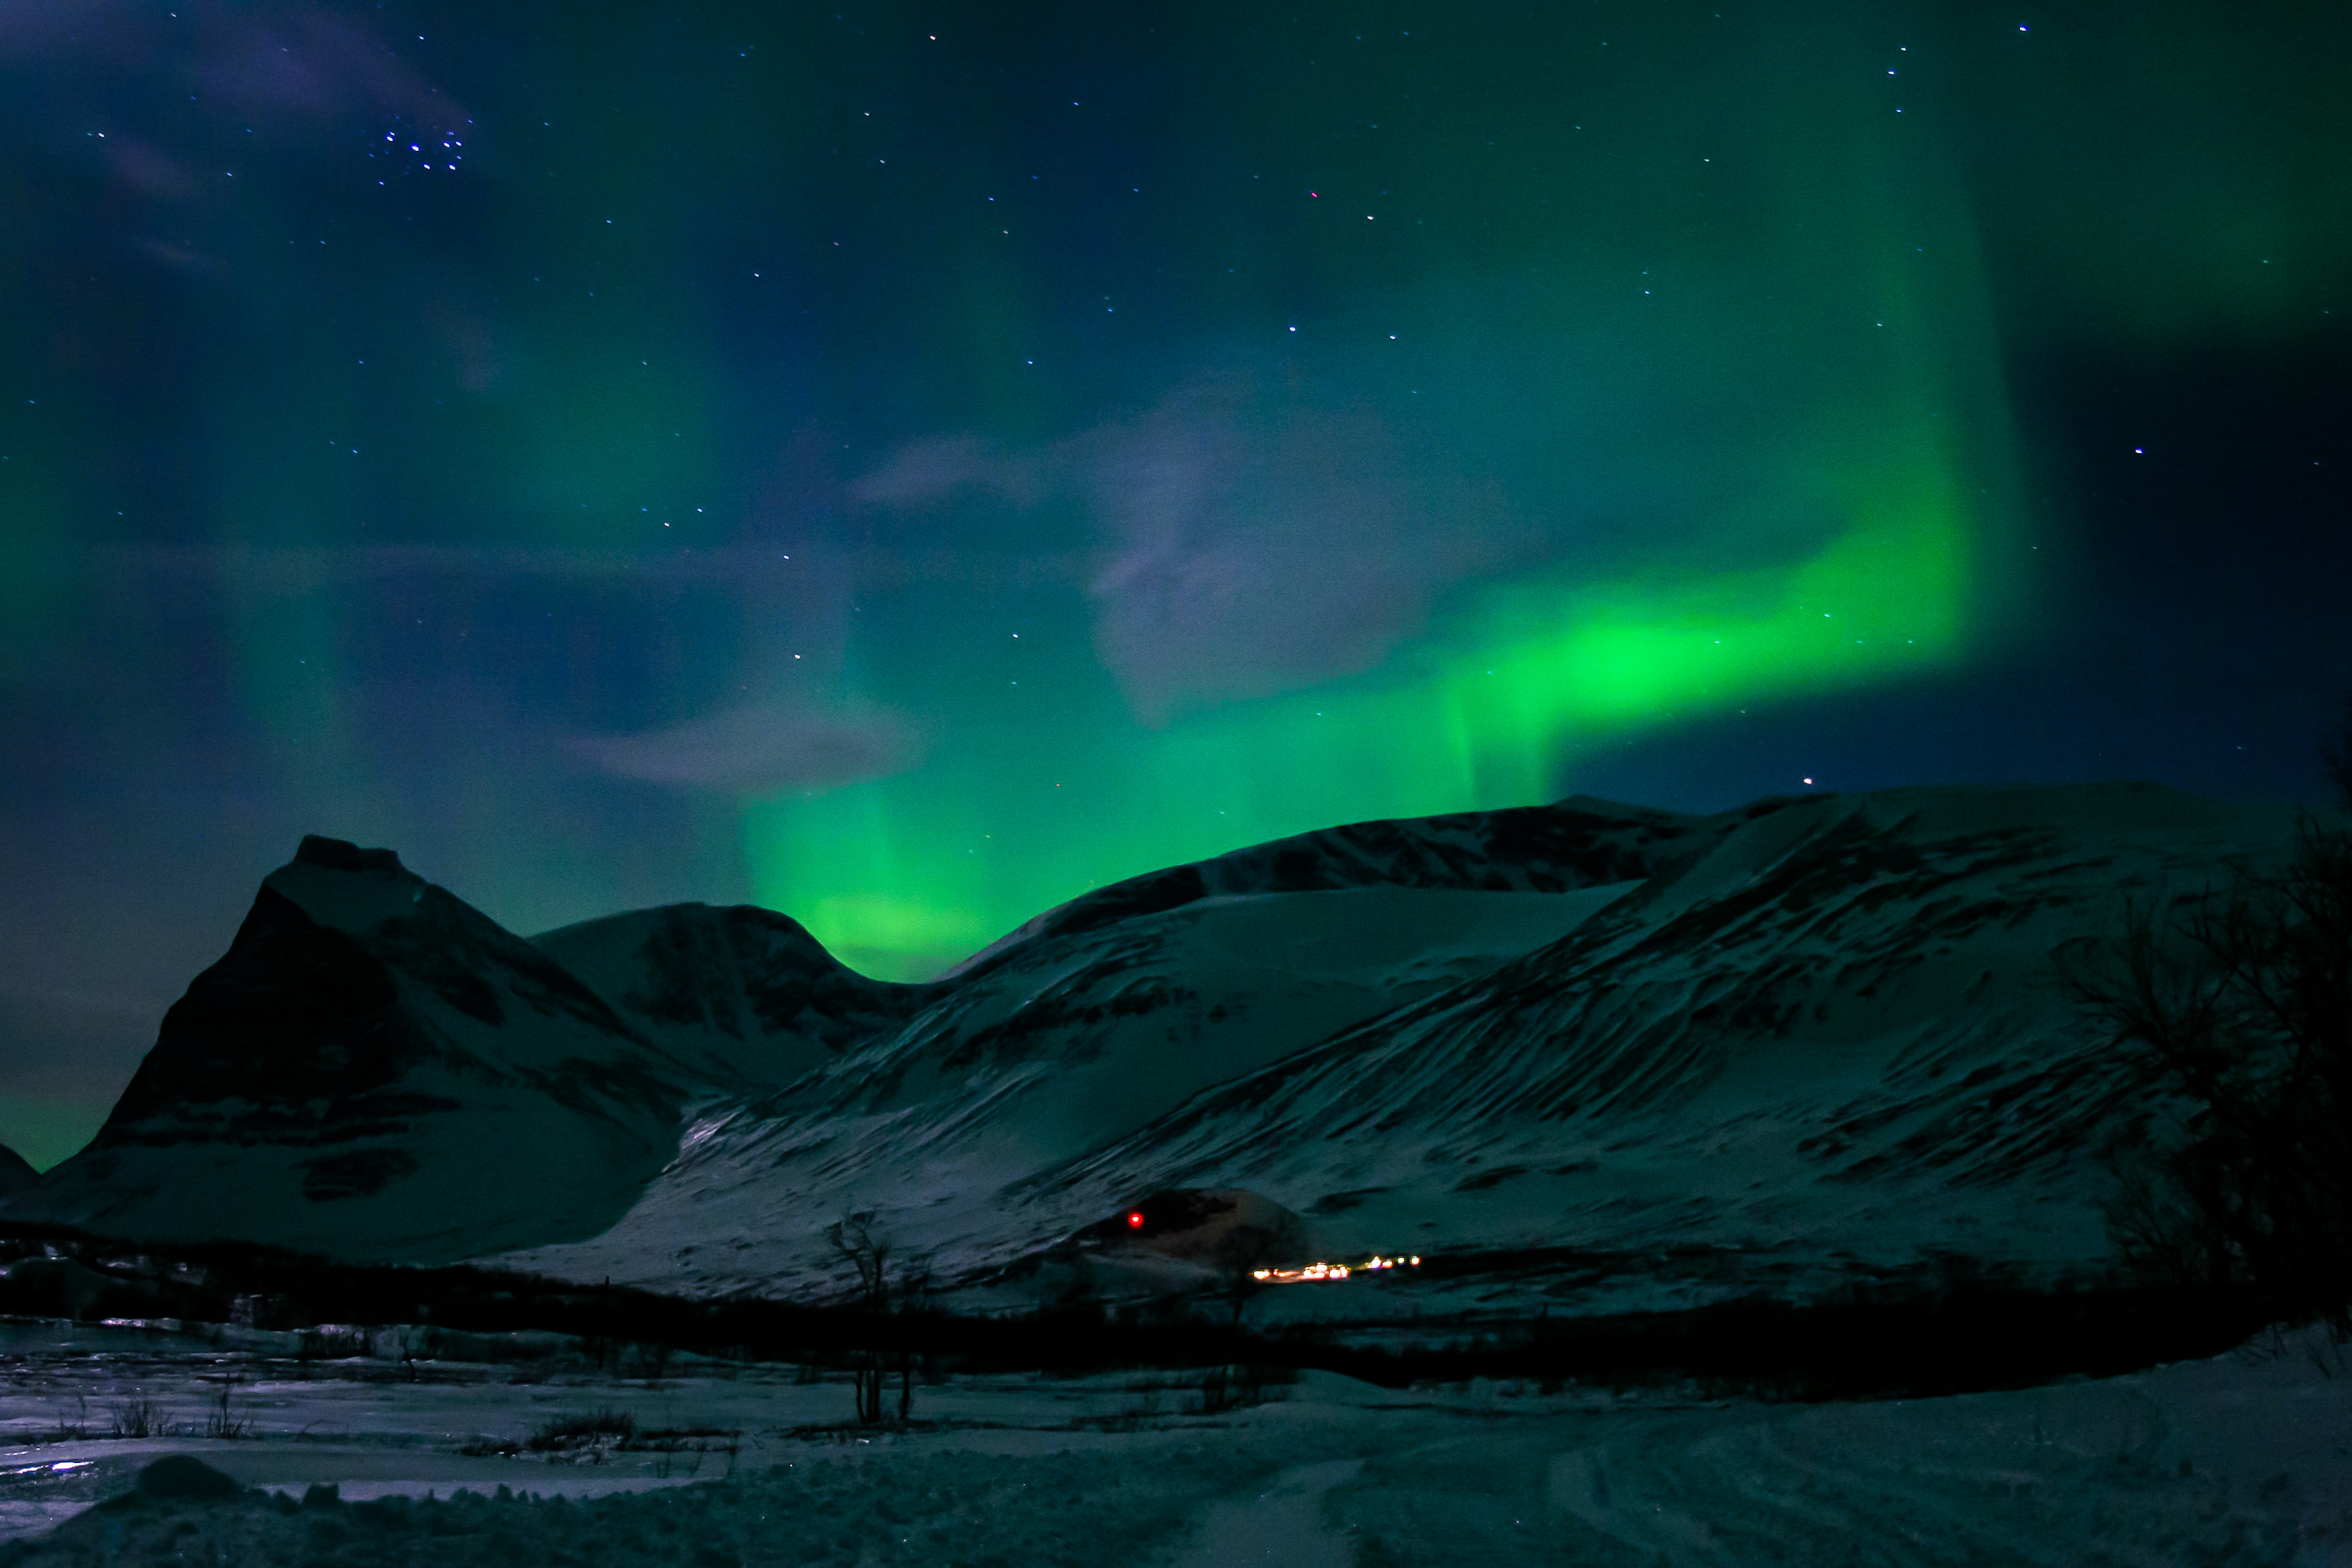 Northern lights over the Kebnekaise mountain lodge.